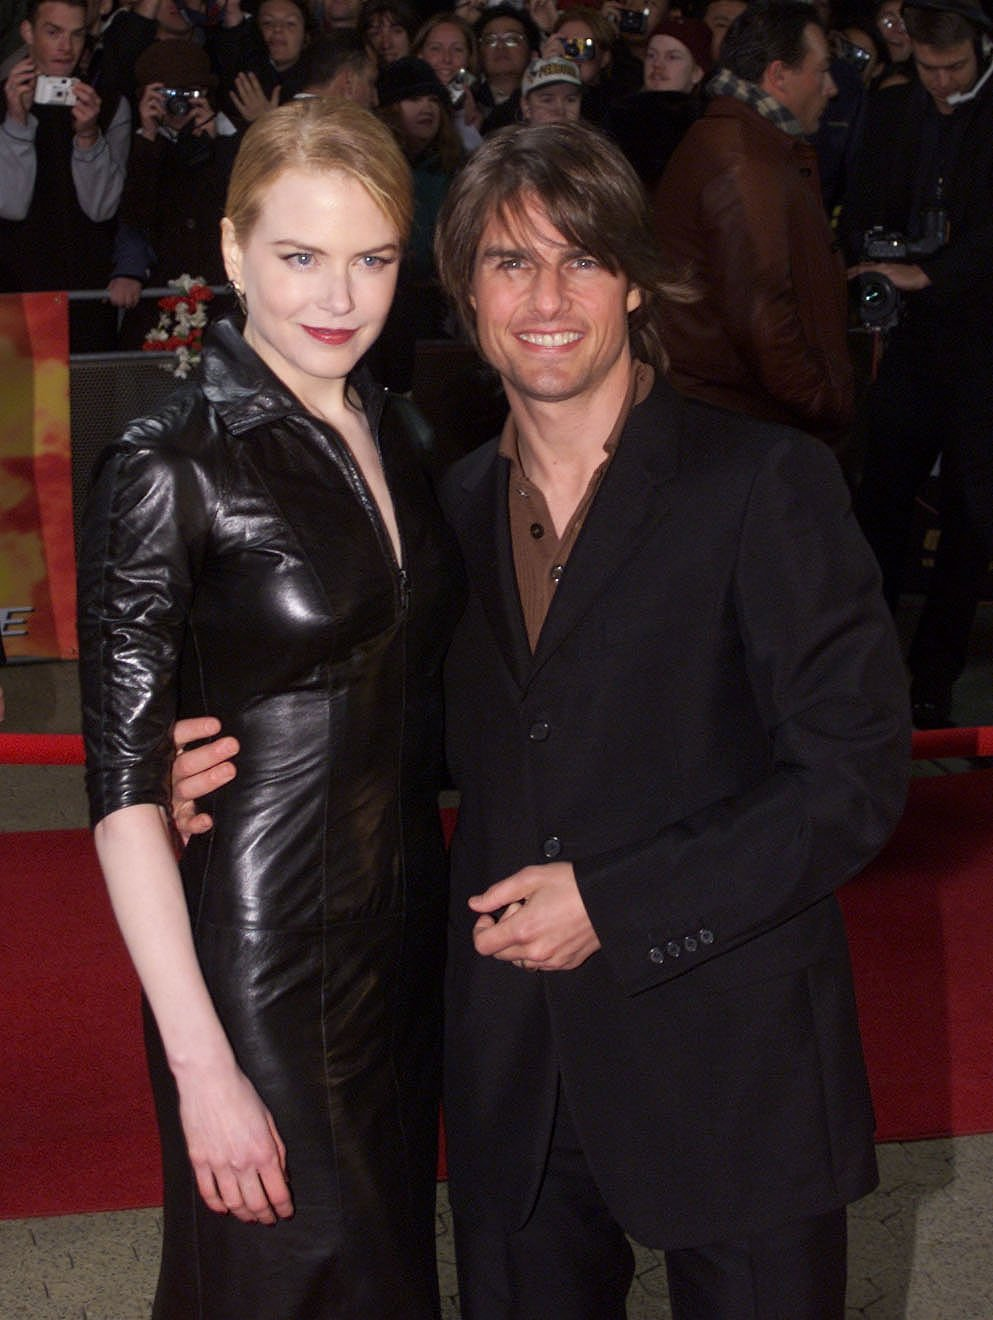 """Tom Cruise and Nicole Kidman pose for photographers at the Sydney premiere of """"Mission Impossible 2"""" May 30, 2000 at Fox Studios in Australia. 